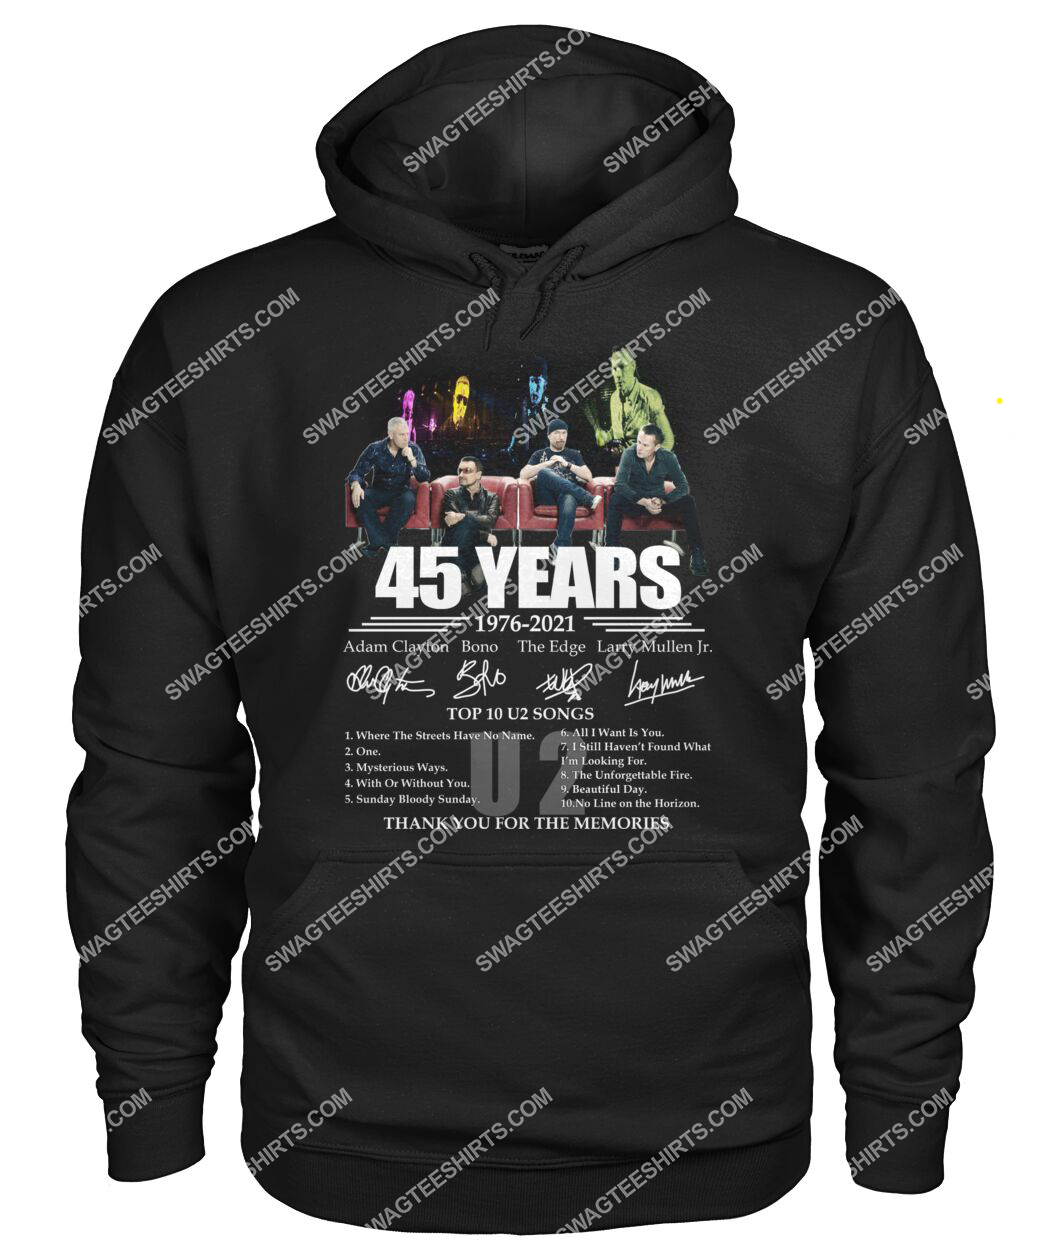 u2 band 45 years thank you for memories signatures hoodie 1